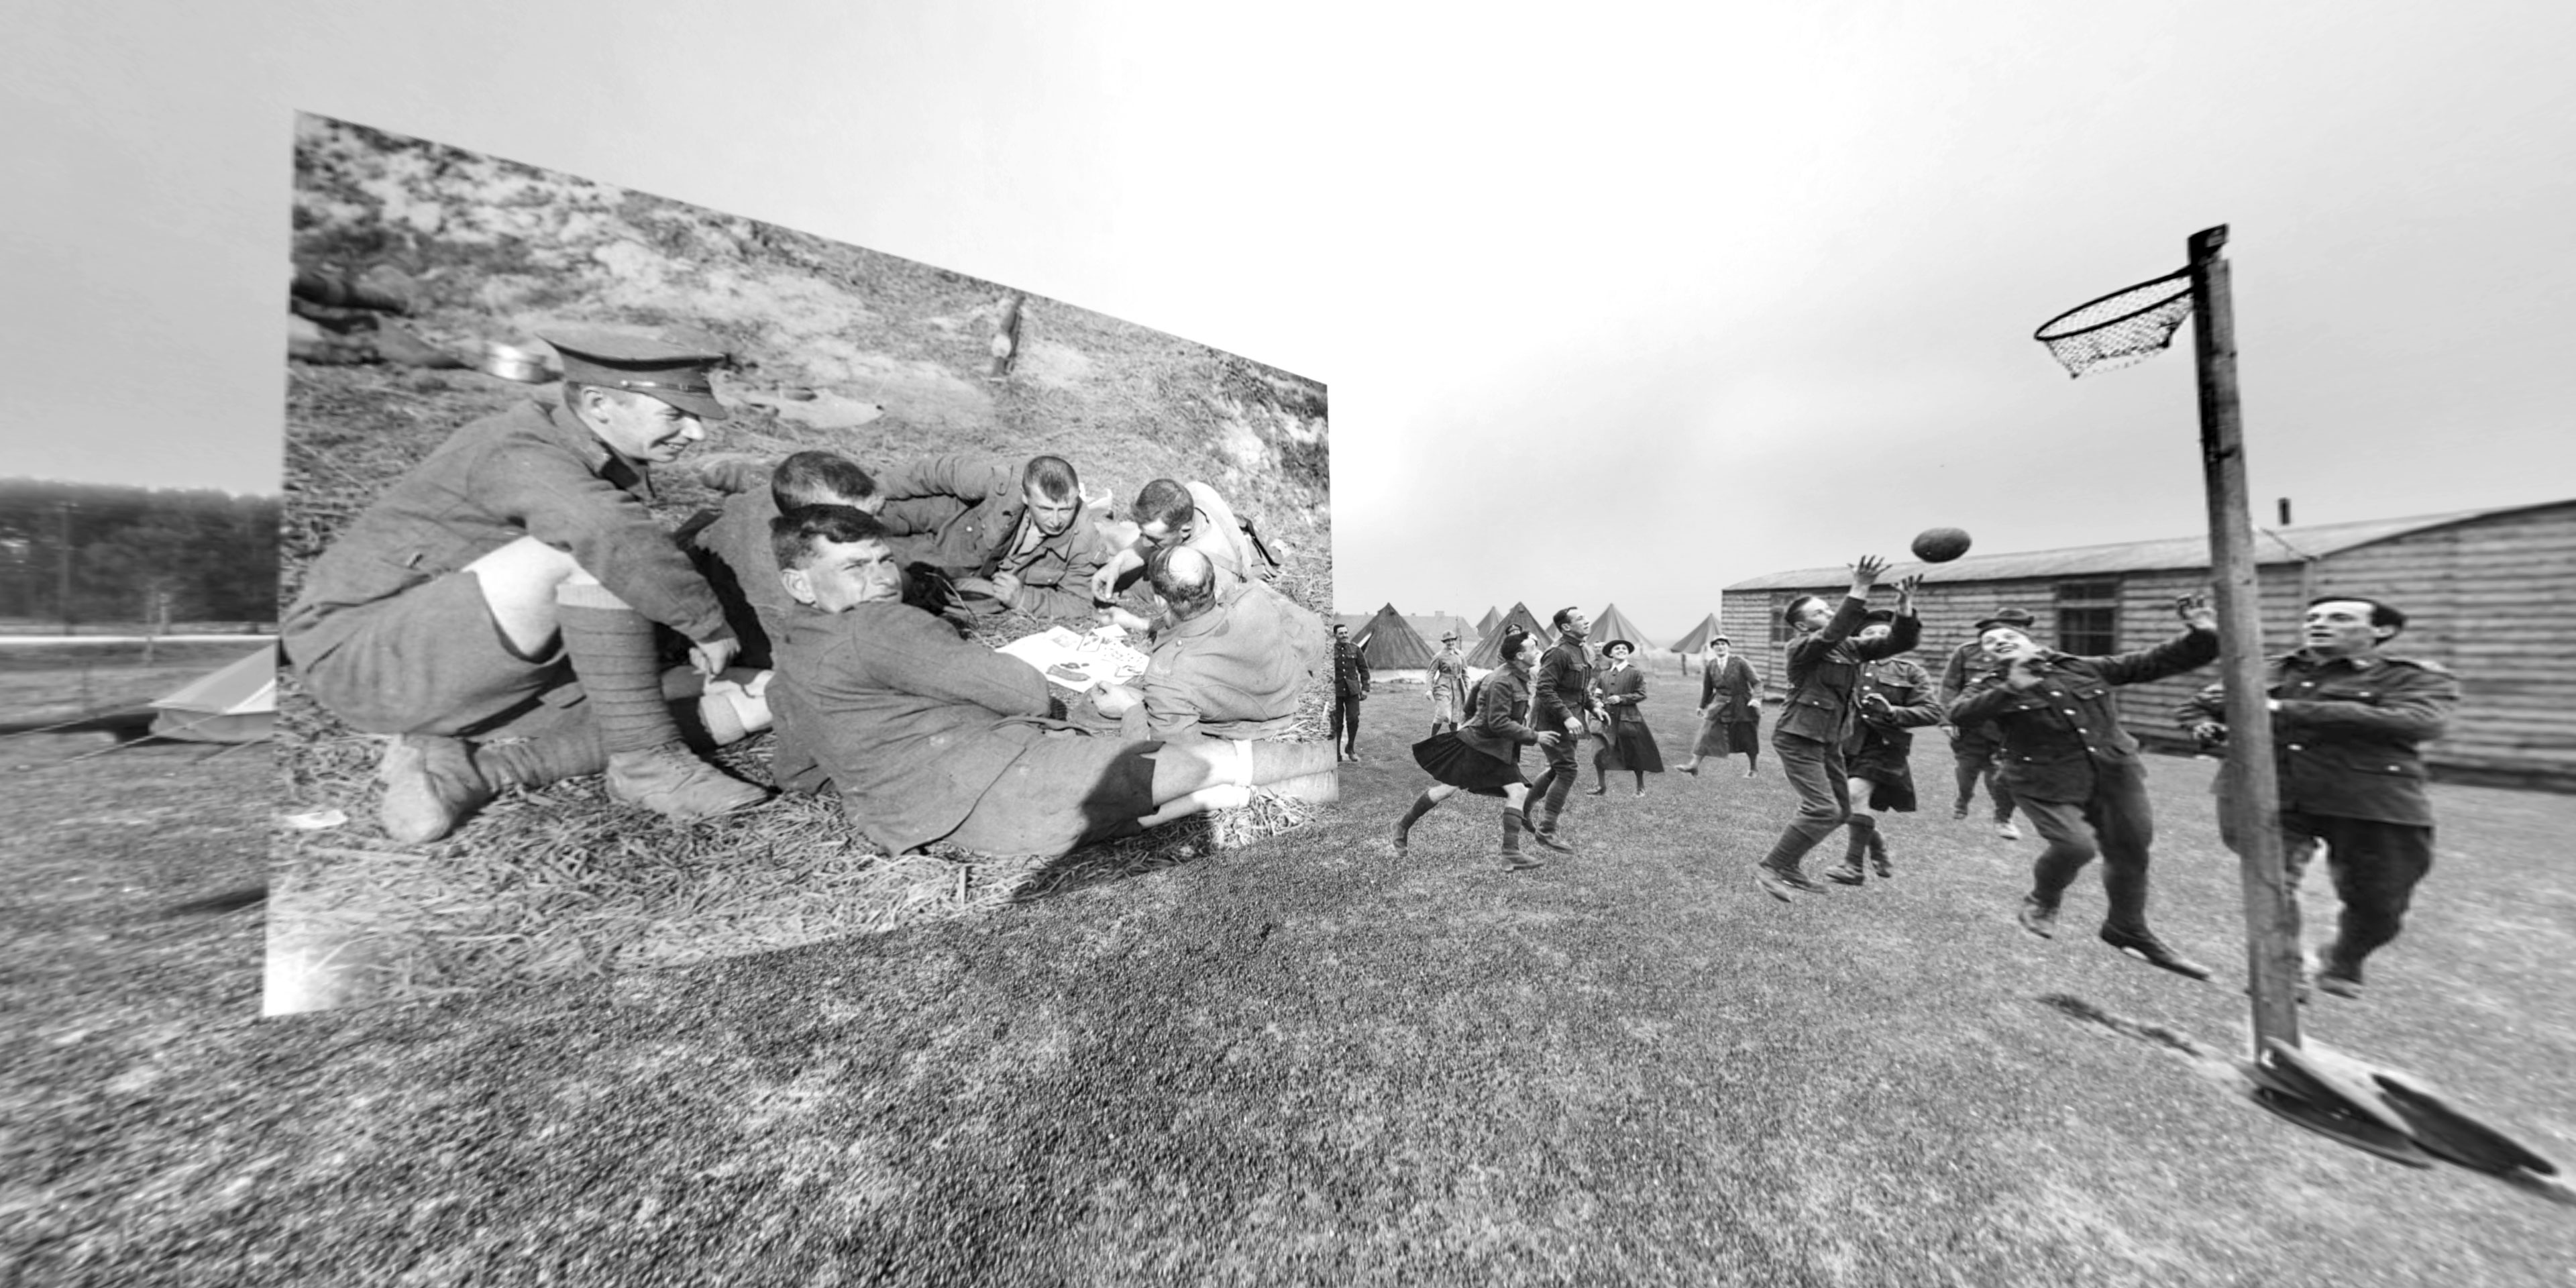 Commemoration of the Battle of Passchendaele - Still from Immersive Experience 05